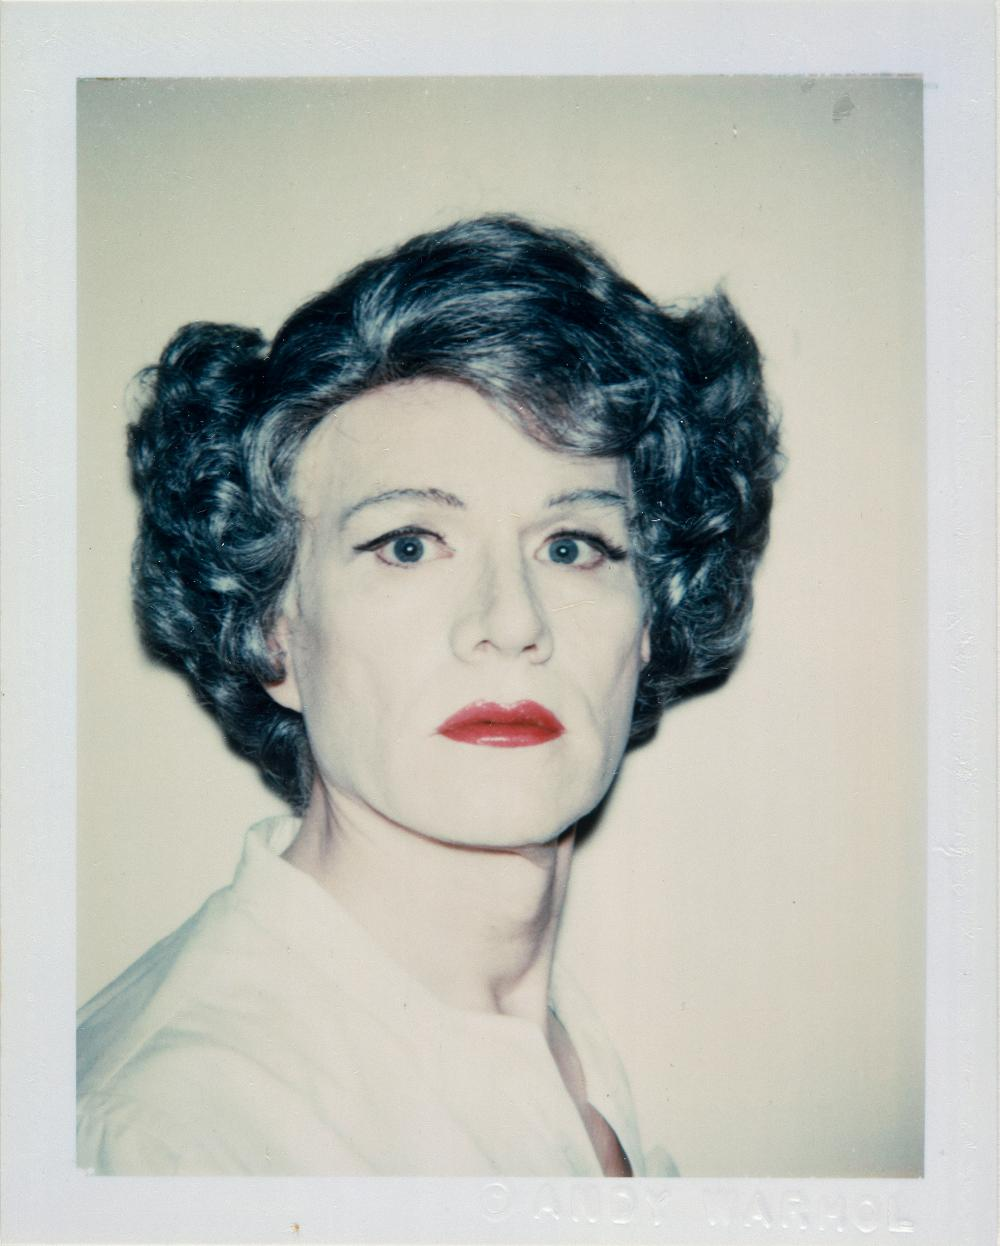 Self Portrait in Drag, 1986 © Andy Warhol© The Andy Warhol Foundation for the Visual Arts, Inc.© Centre Pompidou, MNAM-CCI/Philippe Migeat/Dist. RMN-GP© Adagp, Paris© SABAM Belgium 2018